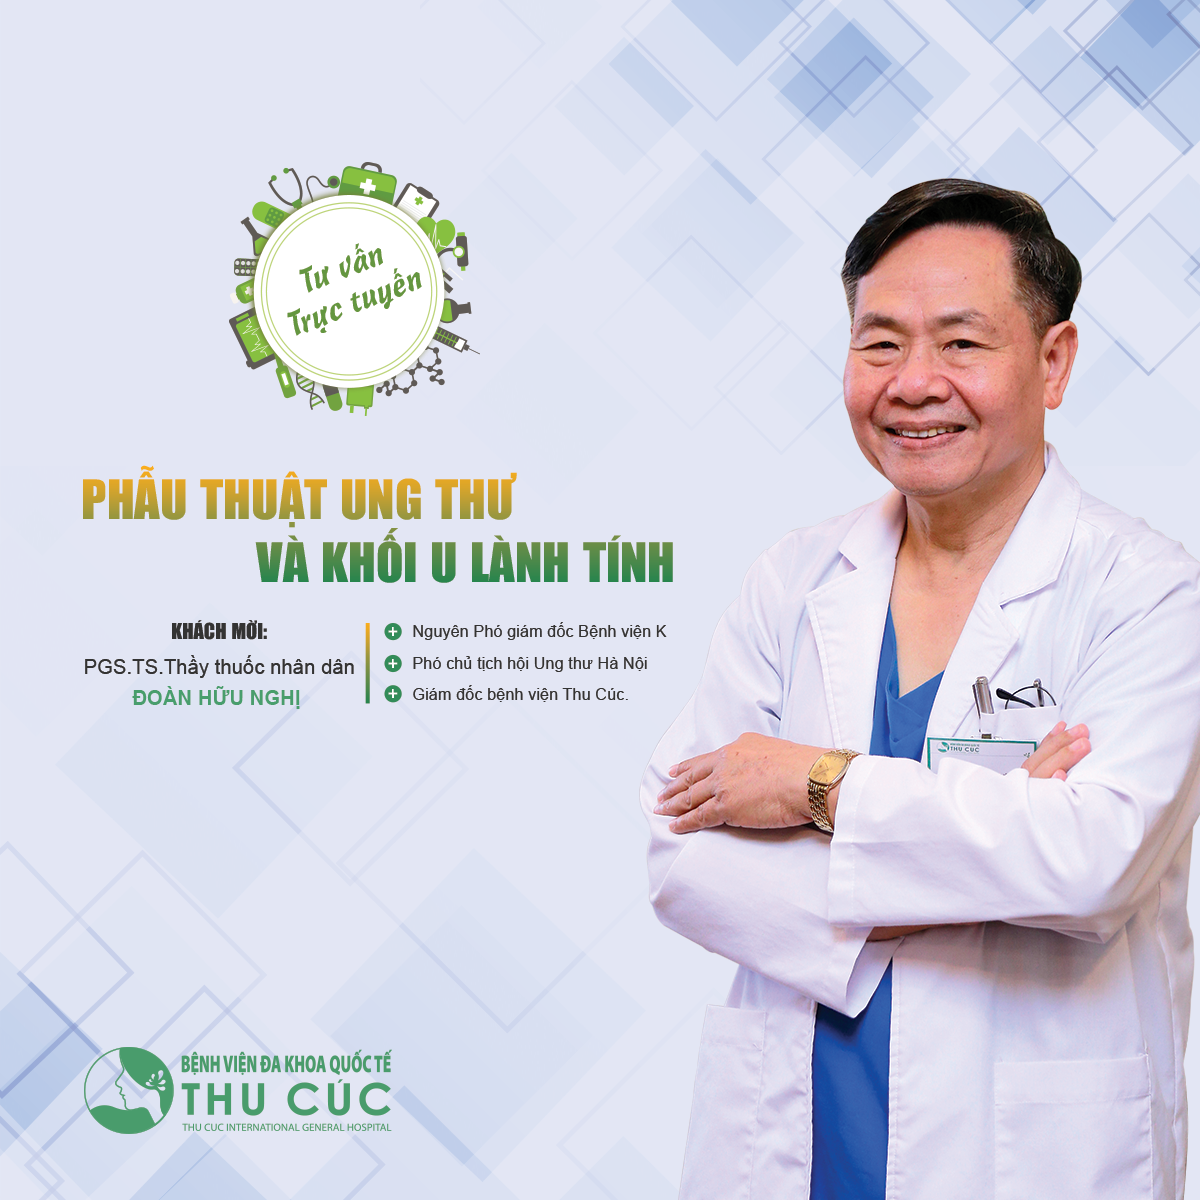 TVTT: Phẫu thuật khối u lành tính và ác tính